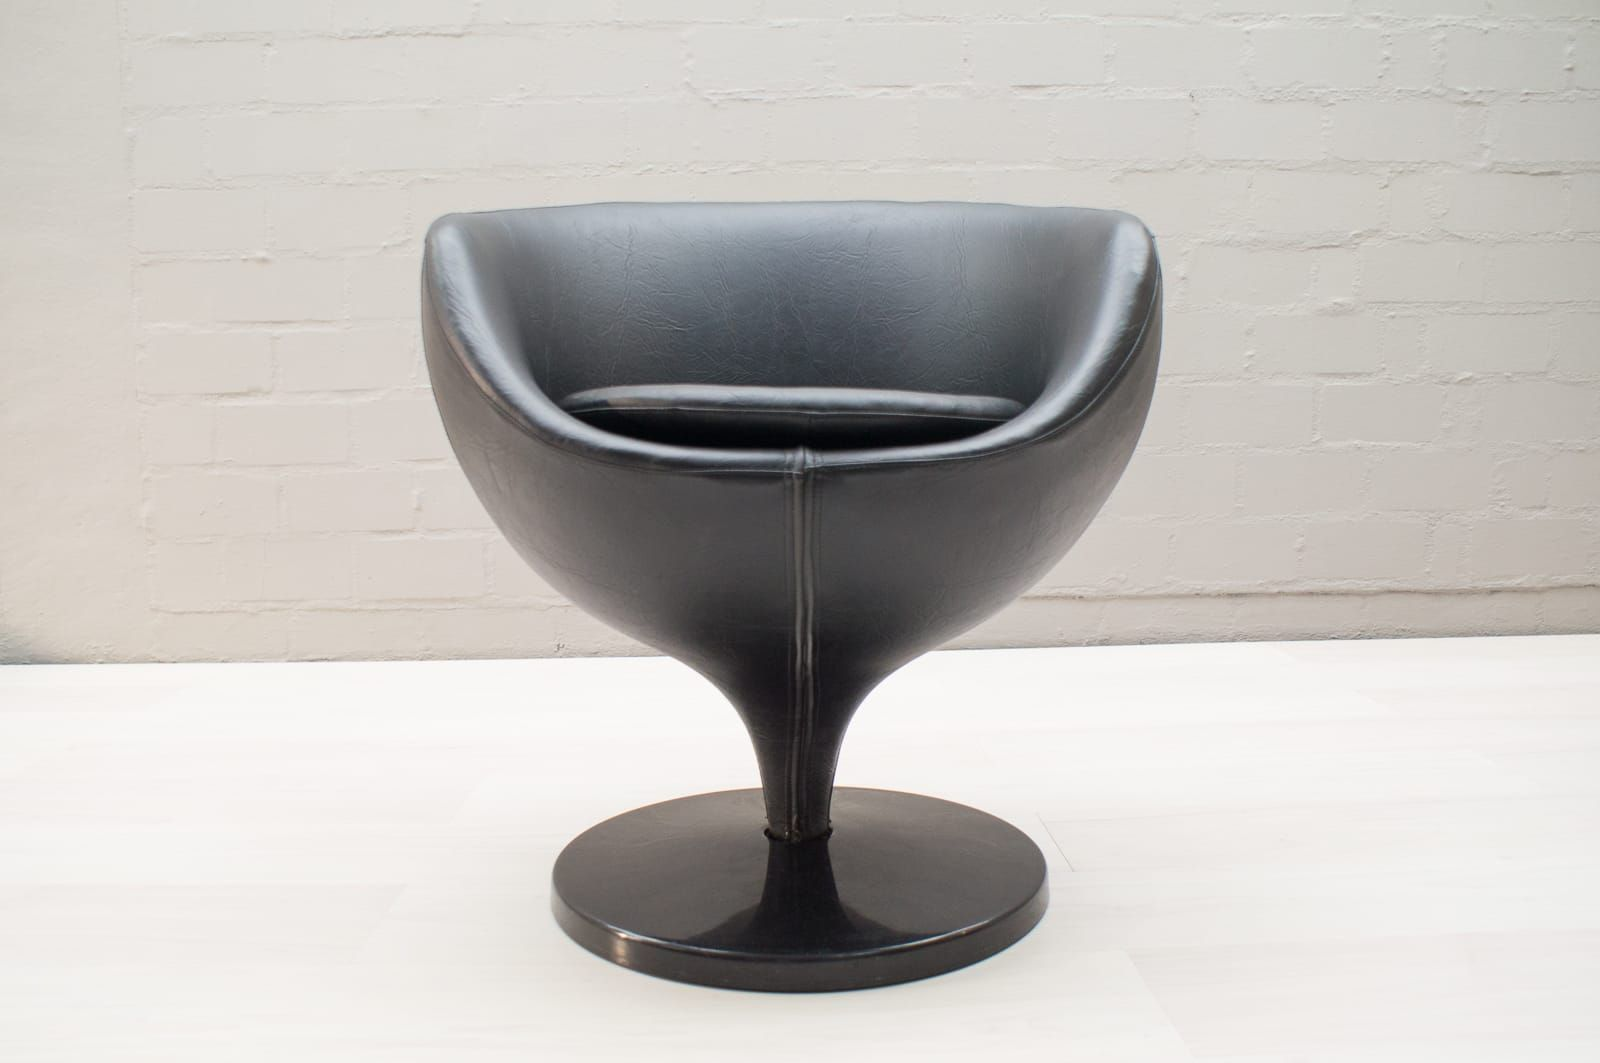 fauteuil boule par pierre guariche pour meurop 1960s en vente sur pamono. Black Bedroom Furniture Sets. Home Design Ideas